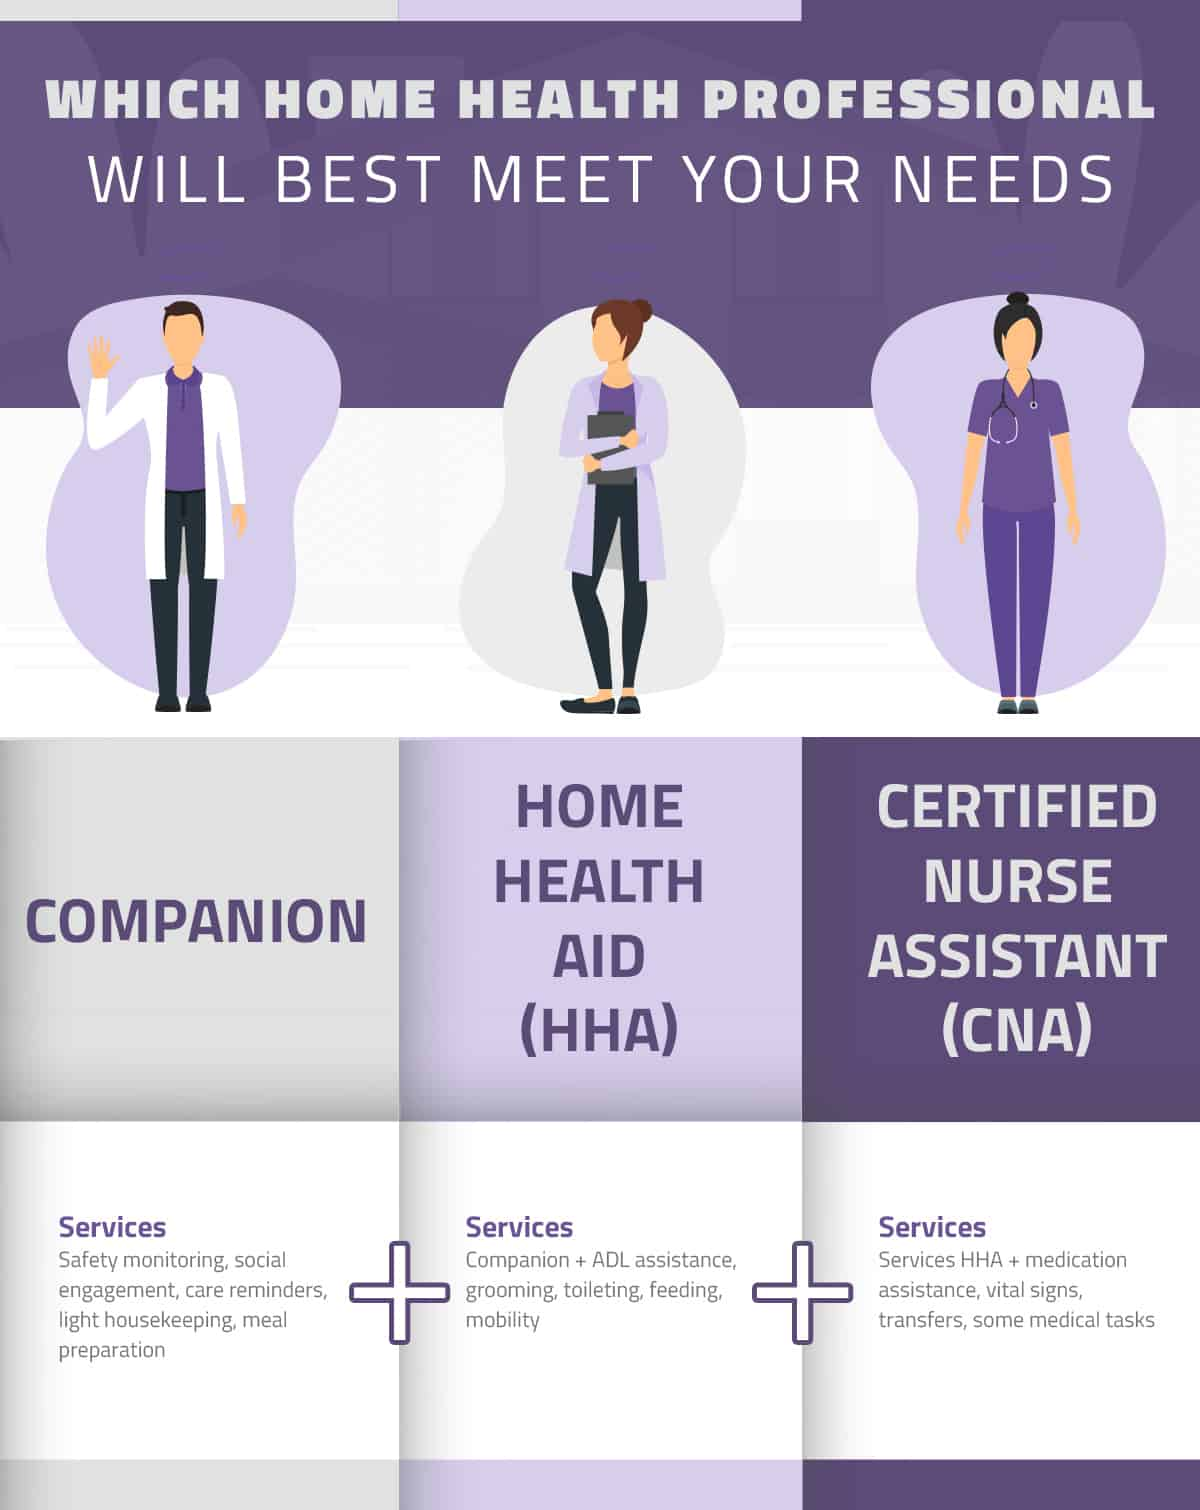 2020-07-15_Which Home Care Pro Best Meets Needs_infographic